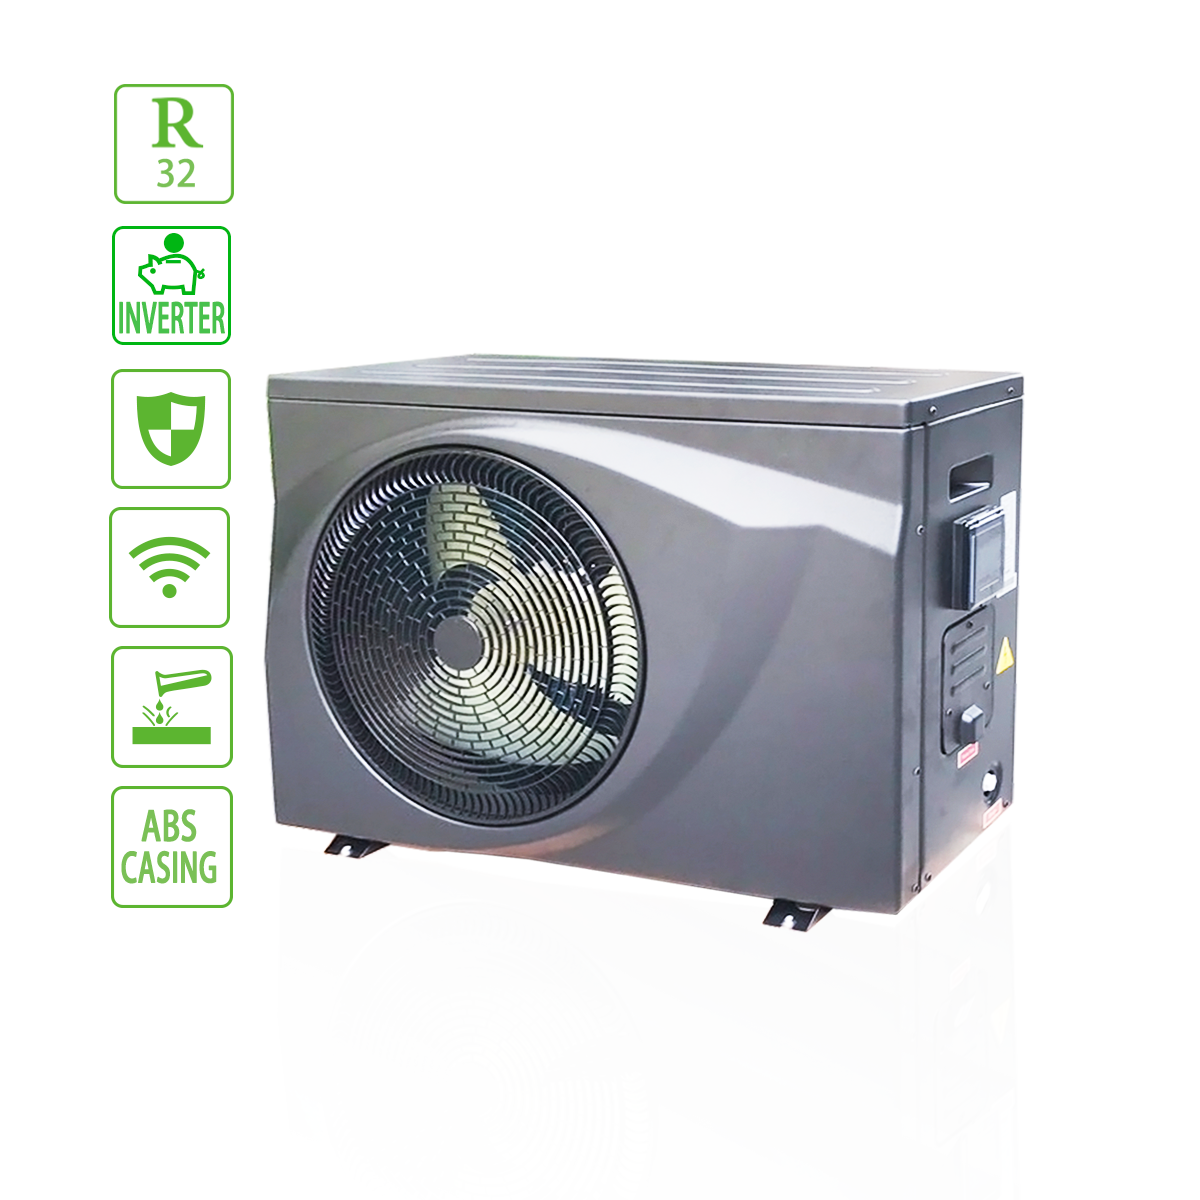 R32 Inverter Swimming Pool Heat Pump